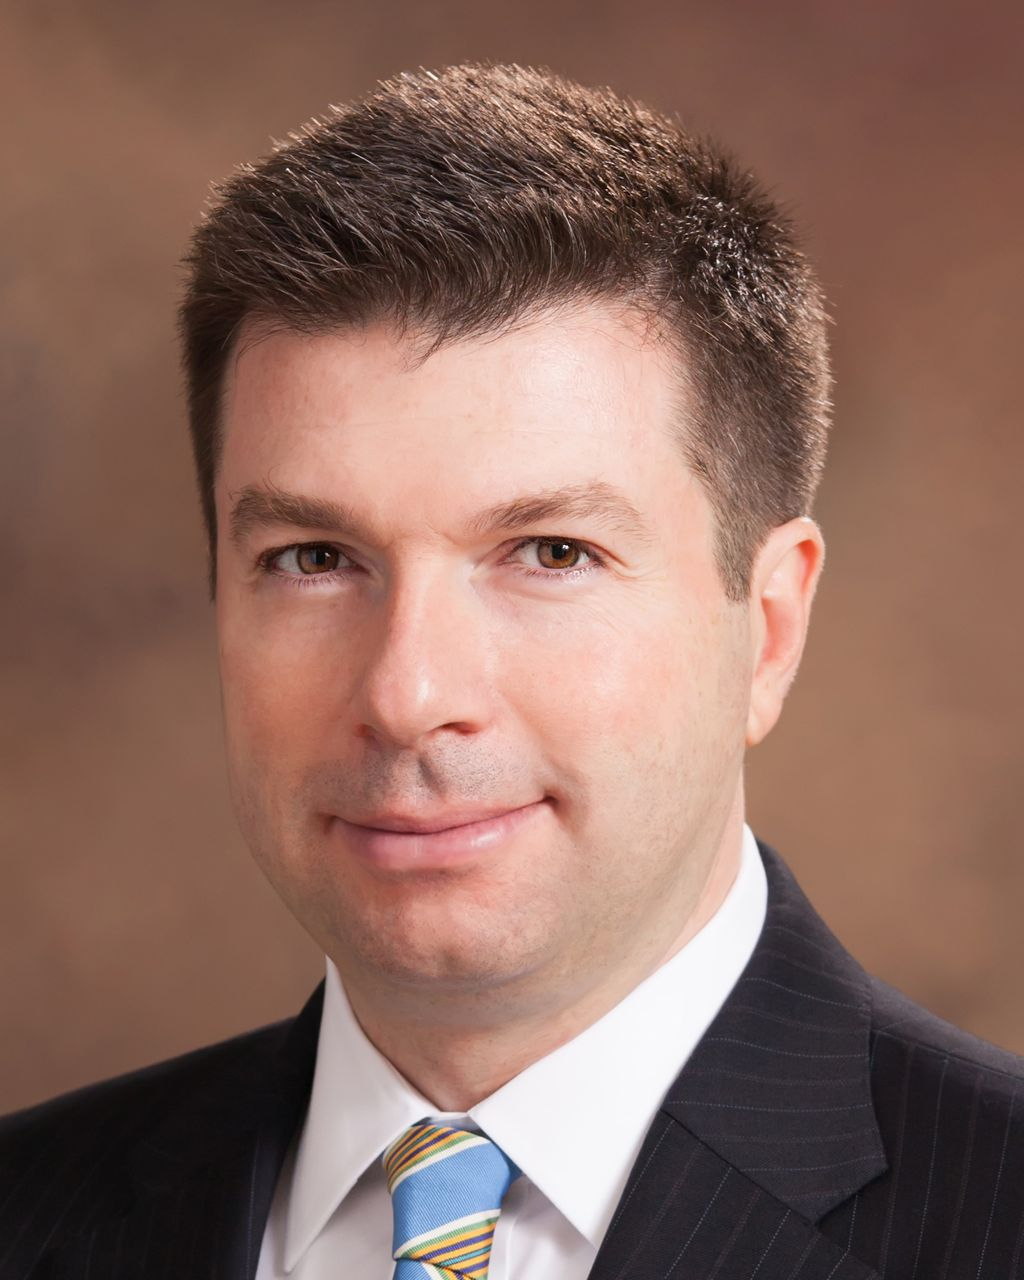 Patrick Cote, financial advisor Salem MA